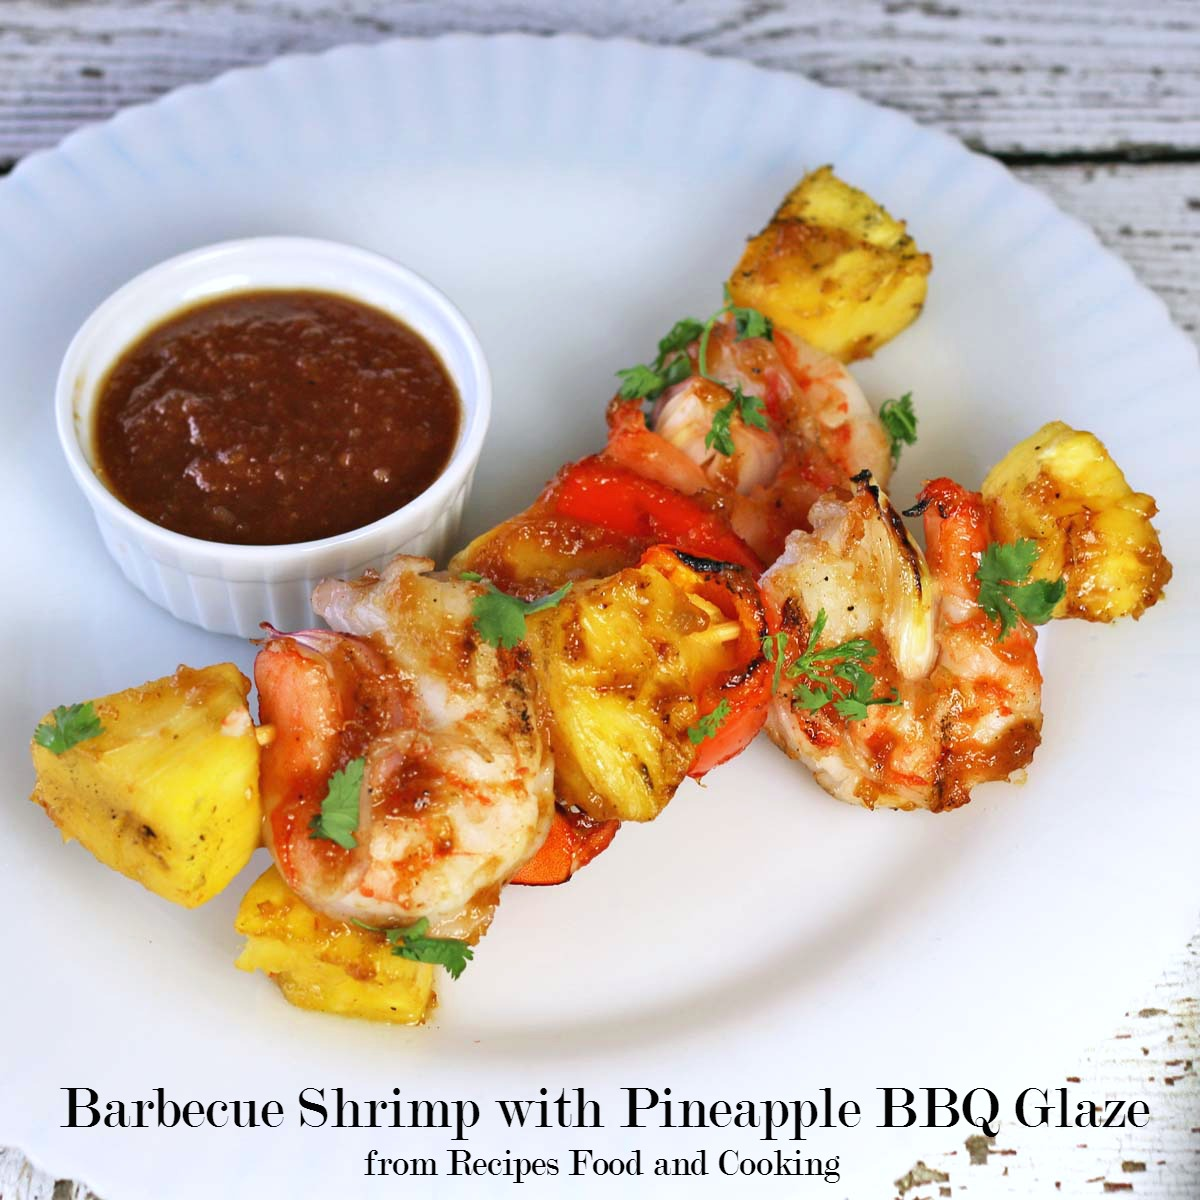 Barbecue Shrimp with Pineapple BBQ Glaze #WeekdaySupper - Recipes Food ...